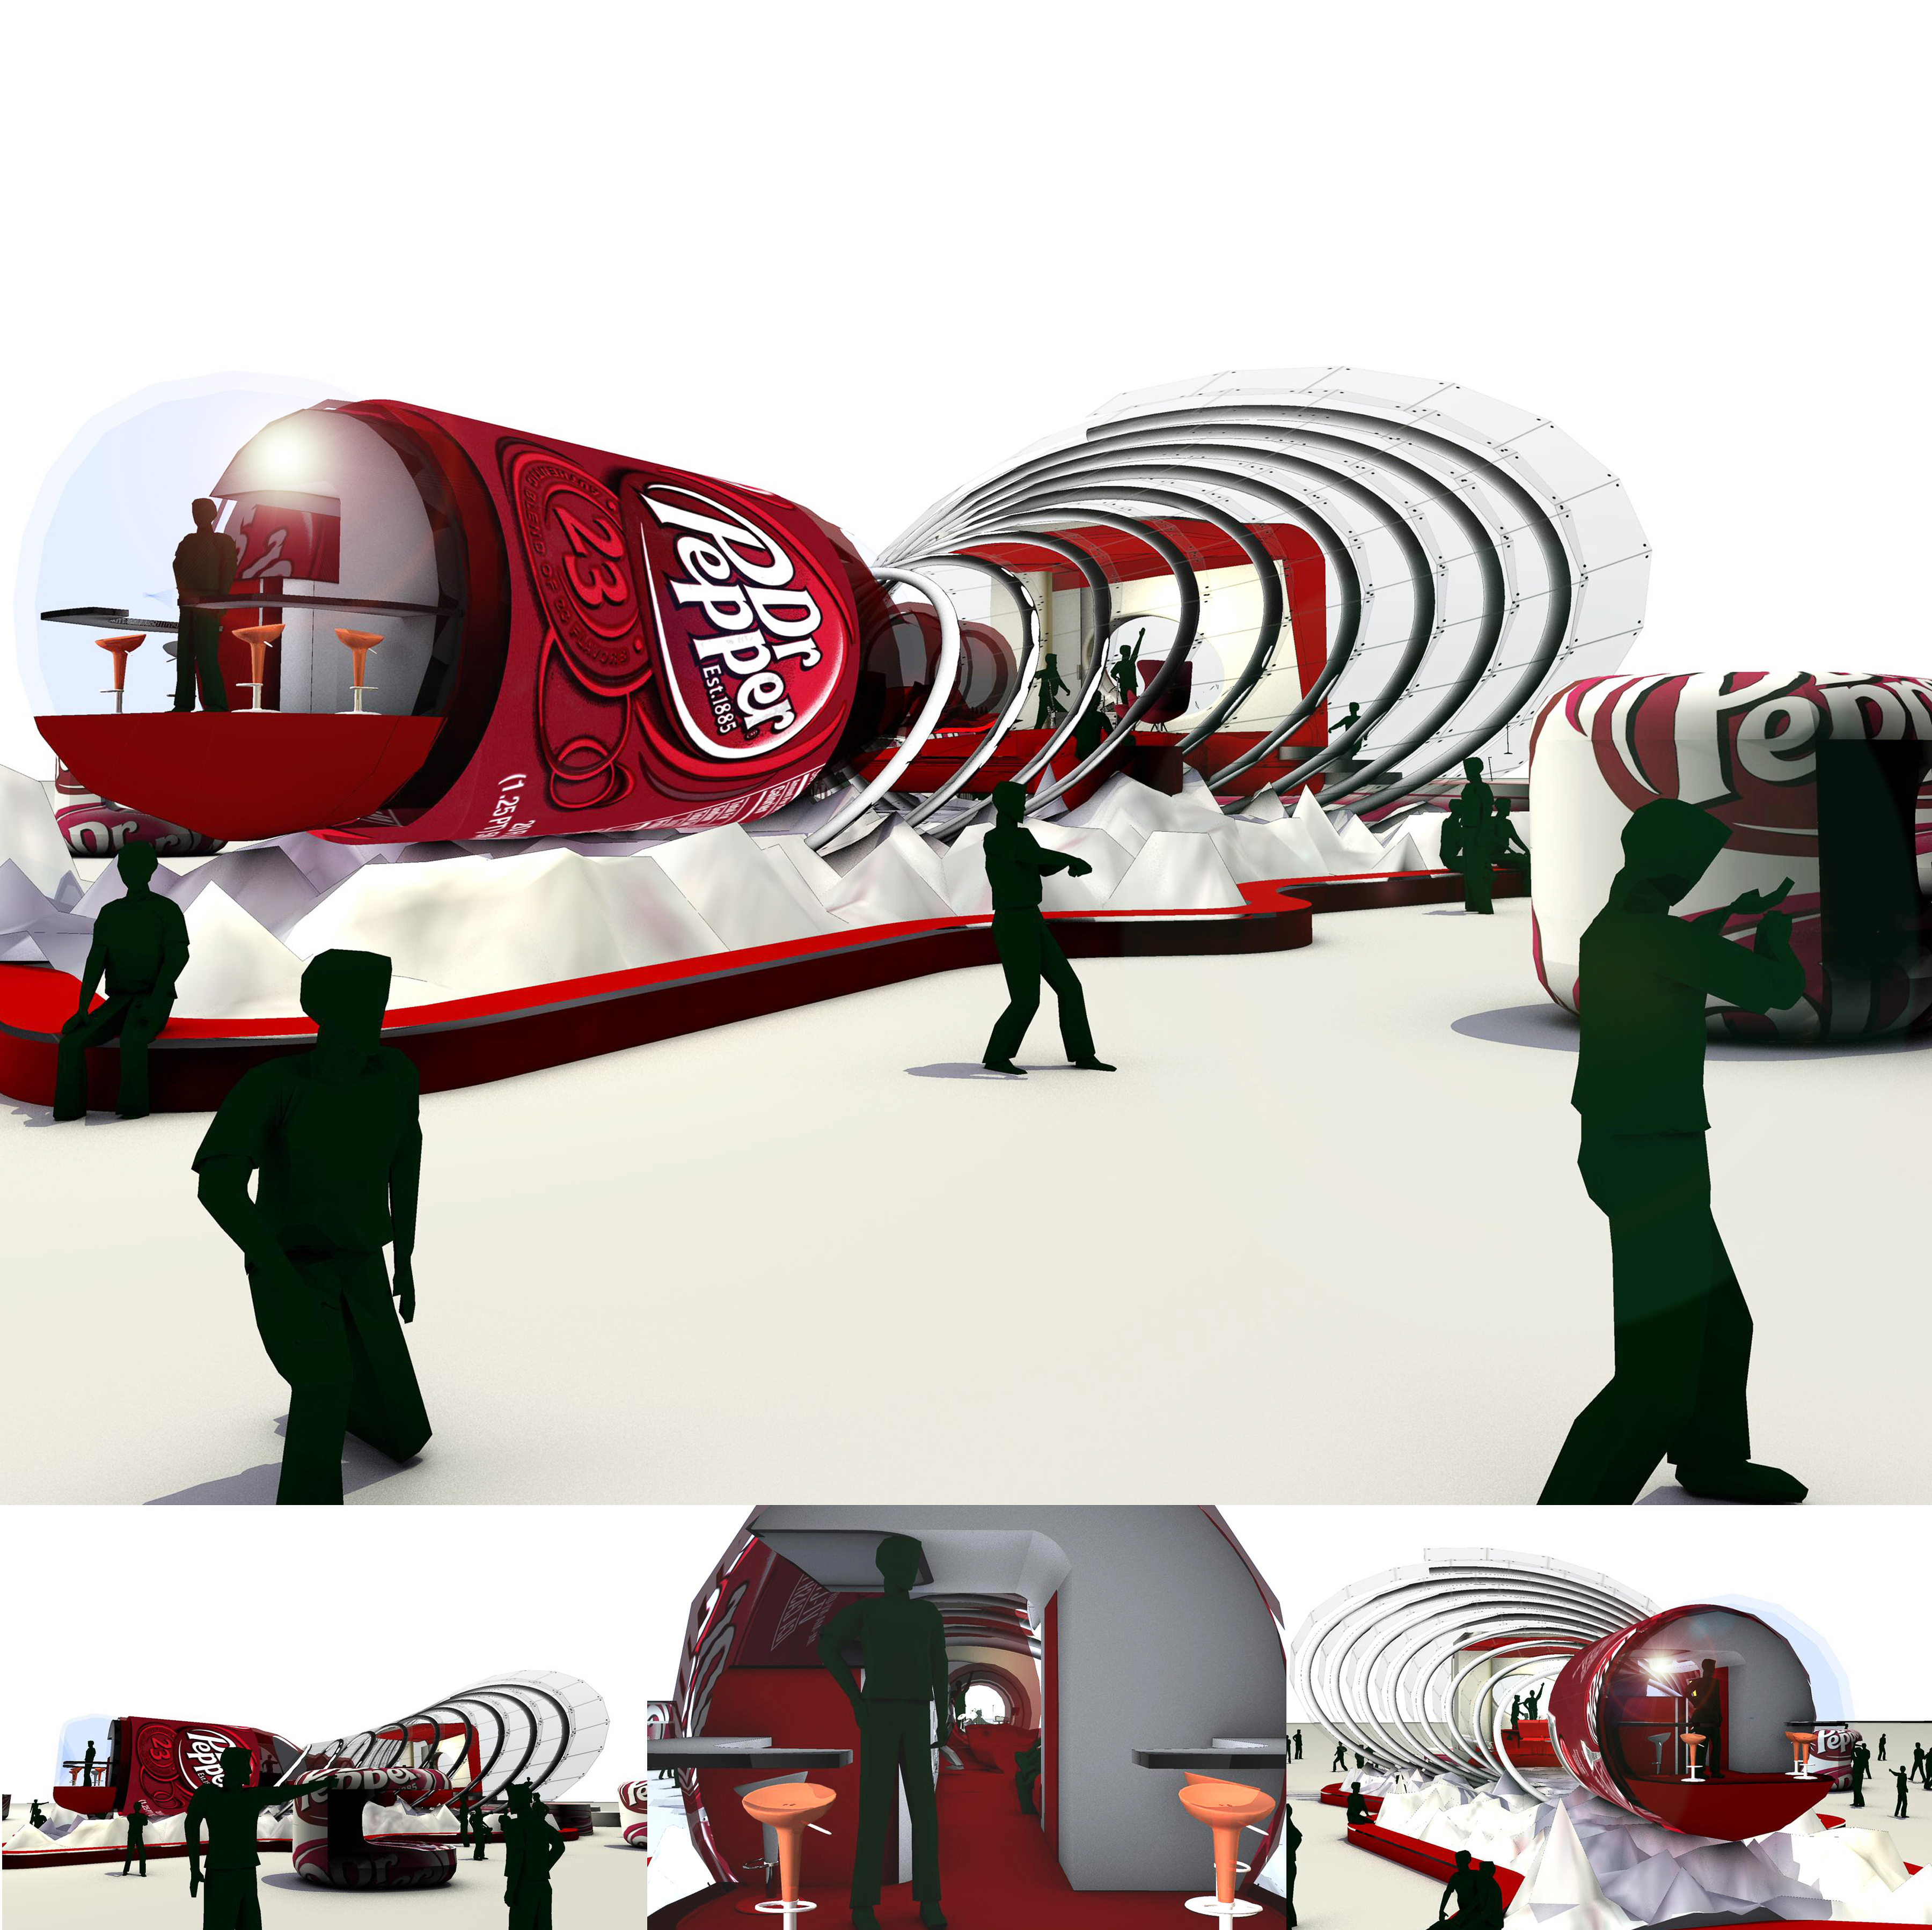 Dr. Pepper Competition